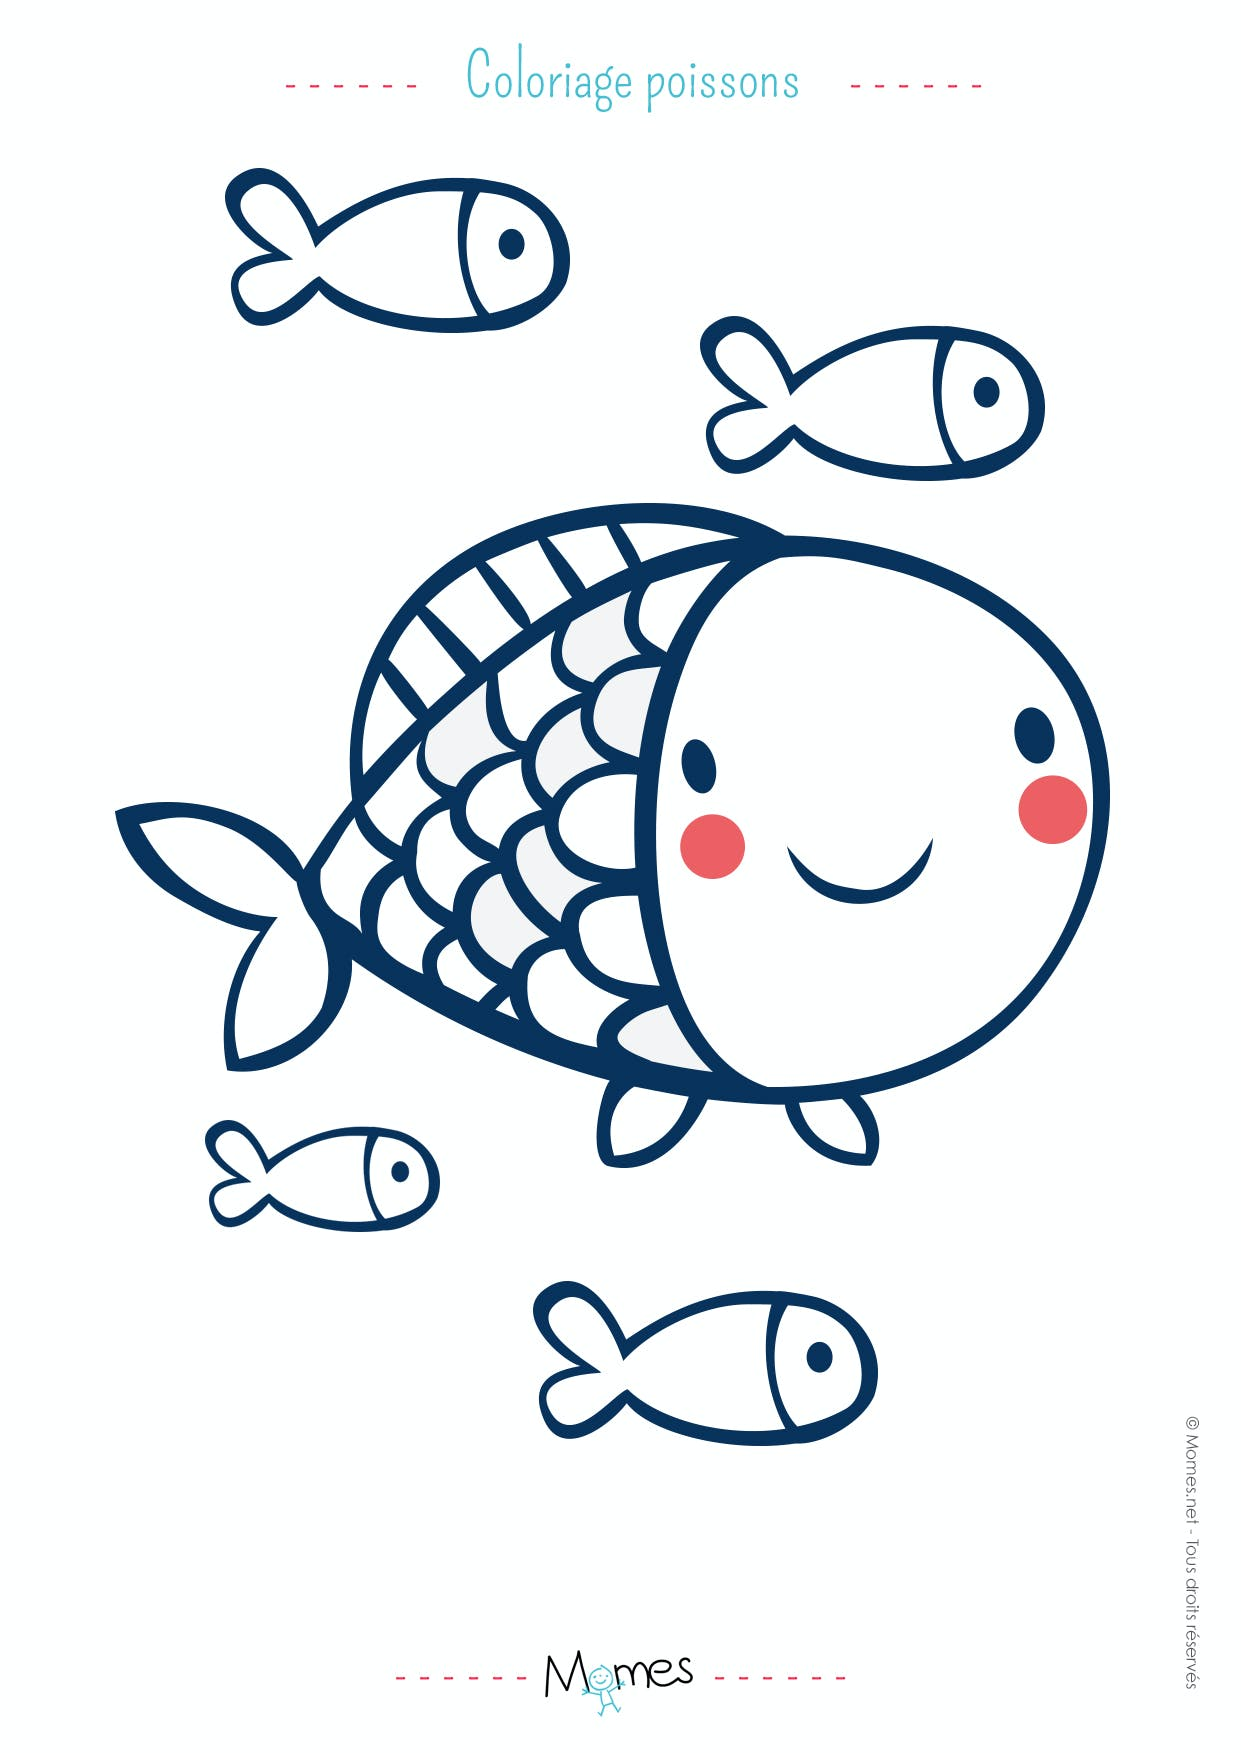 Coloriage poisson d 39 avril - Dessin poisson ...